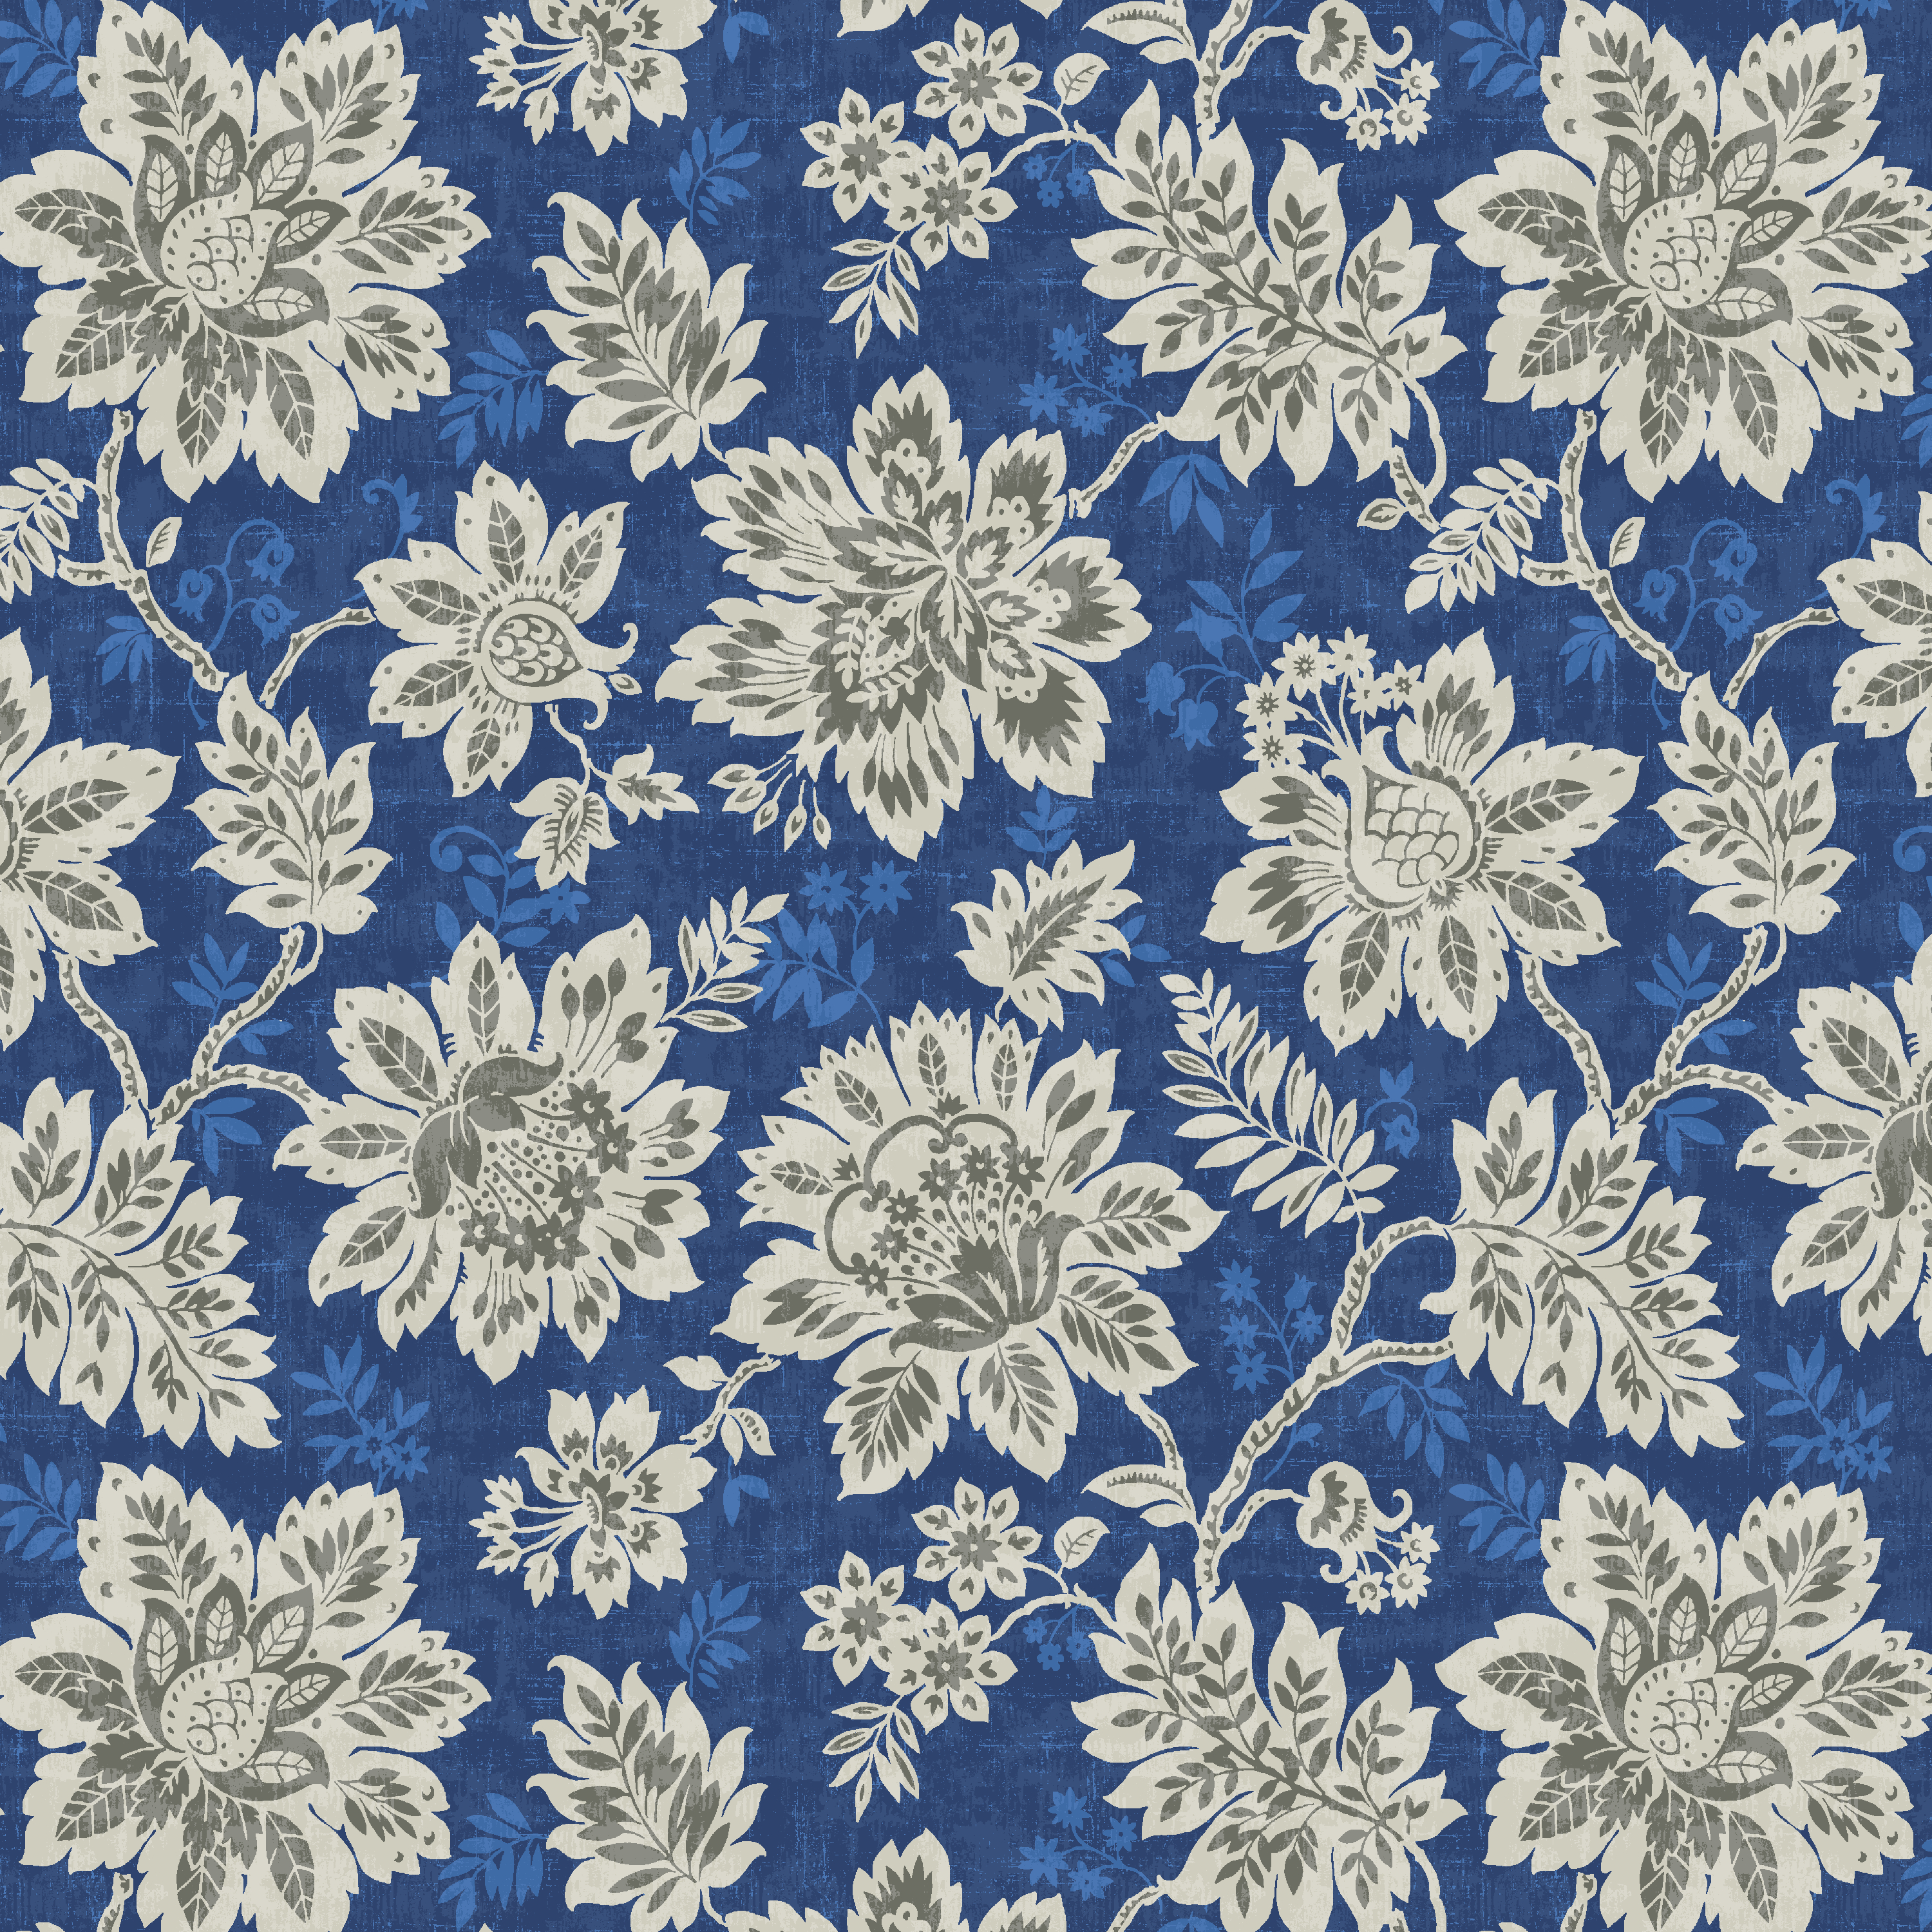 Waverly Inspirations Petal Blue 100% Cotton Duck Fabric 45'' Wide, 180 Gsm, Quilt Crafts Cut By The Yard